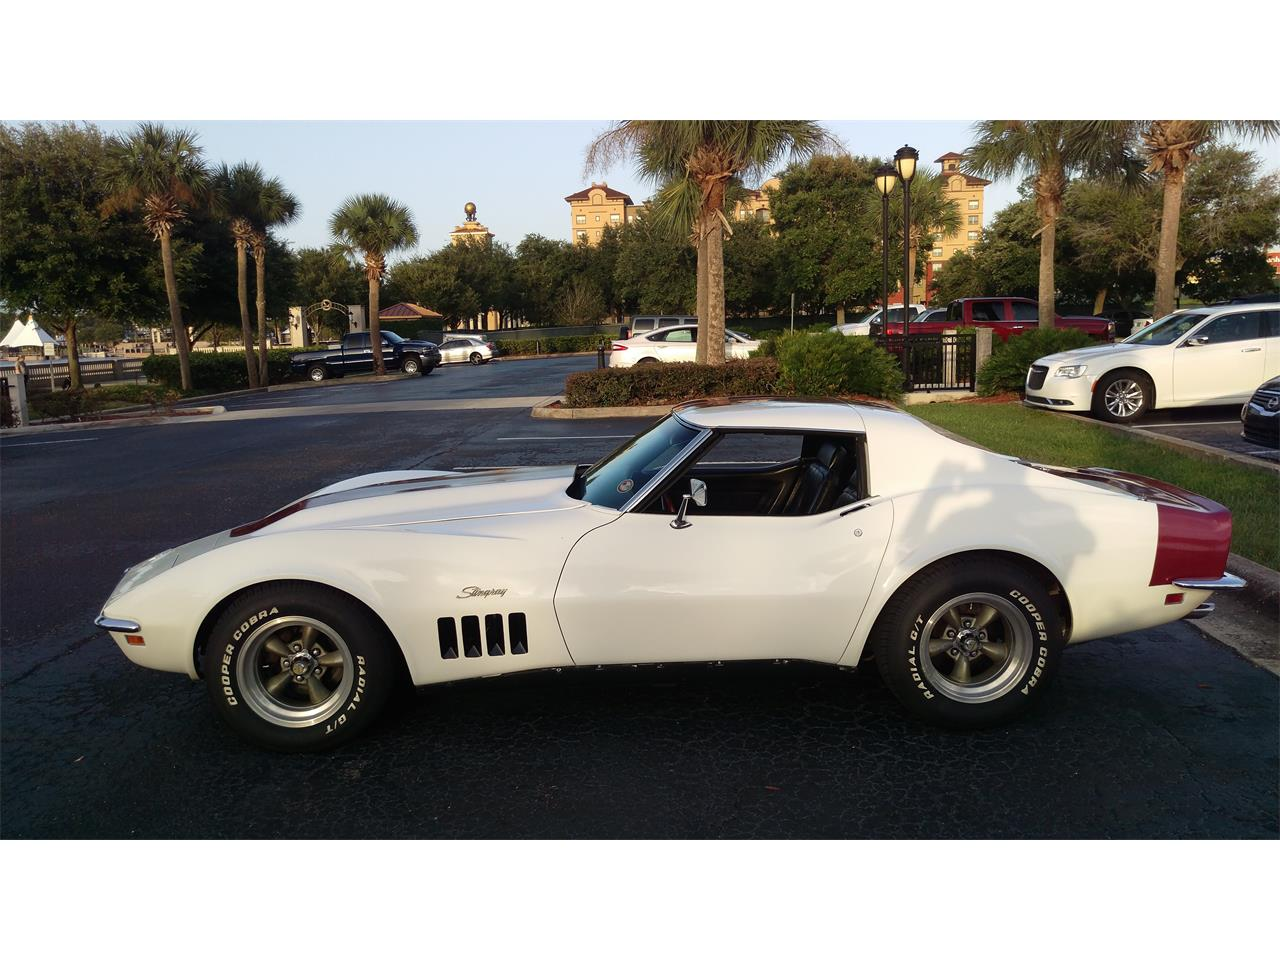 Large Picture of Classic '69 Chevrolet Corvette located in Florida - $29,900.00 Offered by a Private Seller - PBXL